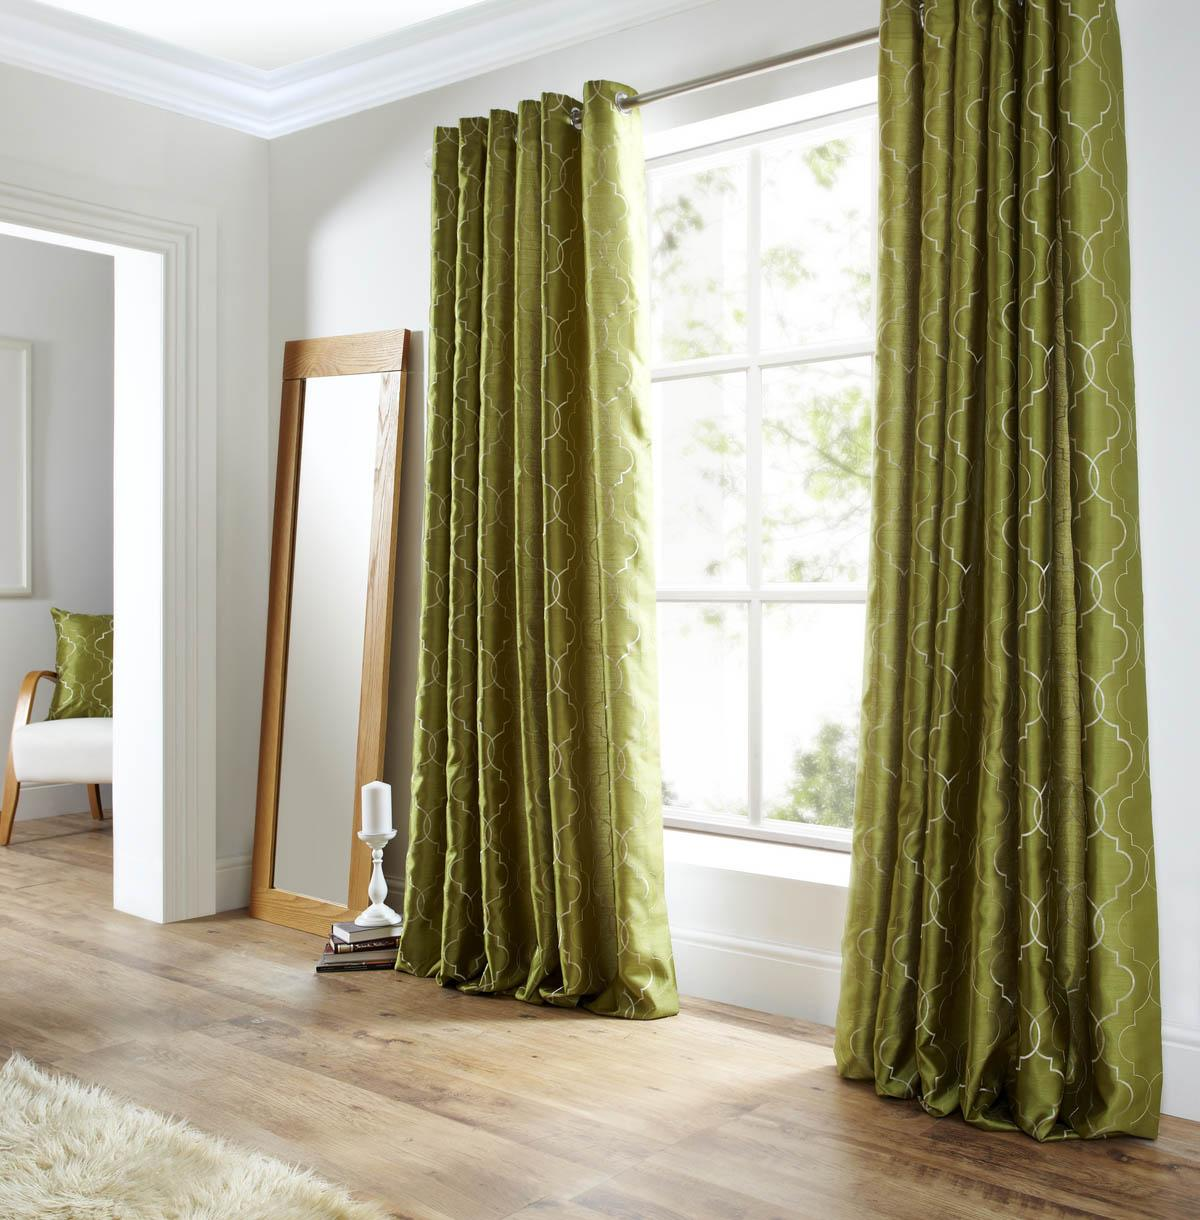 Midtown Eyelet Lined Curtains Green Free UK Delivery